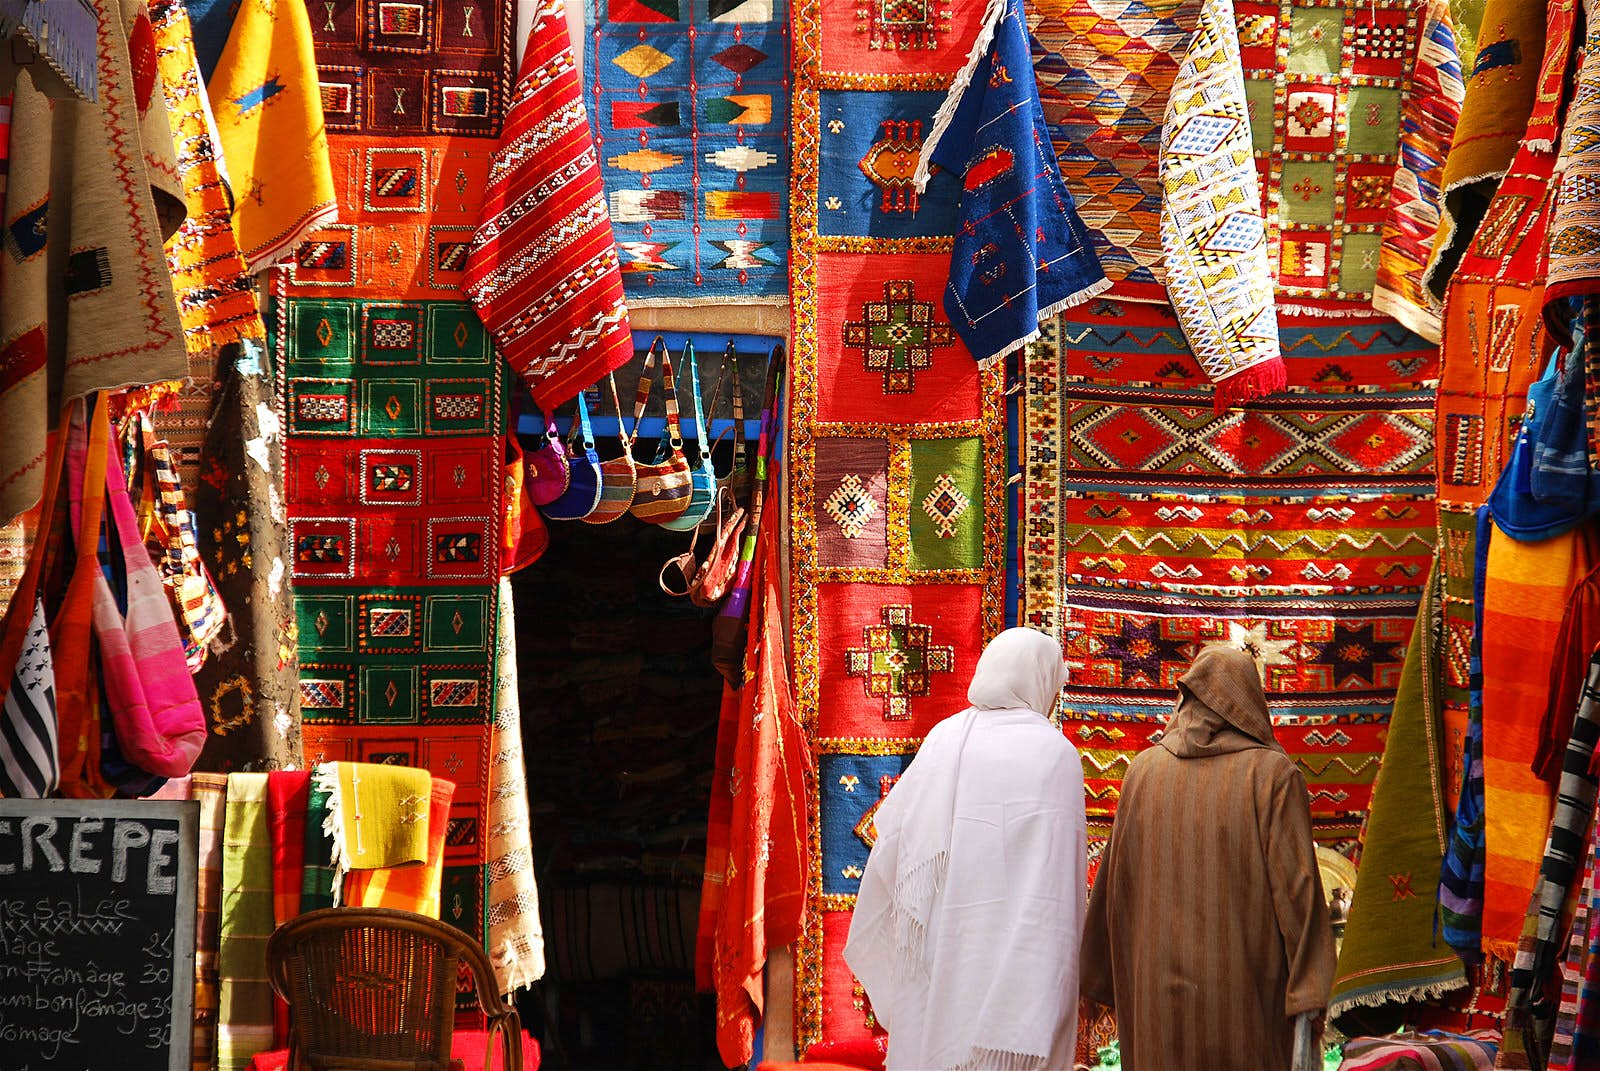 Women wandering through the Carpet Market in Essaouira, Morocco. Image by leuntje / Getty Images